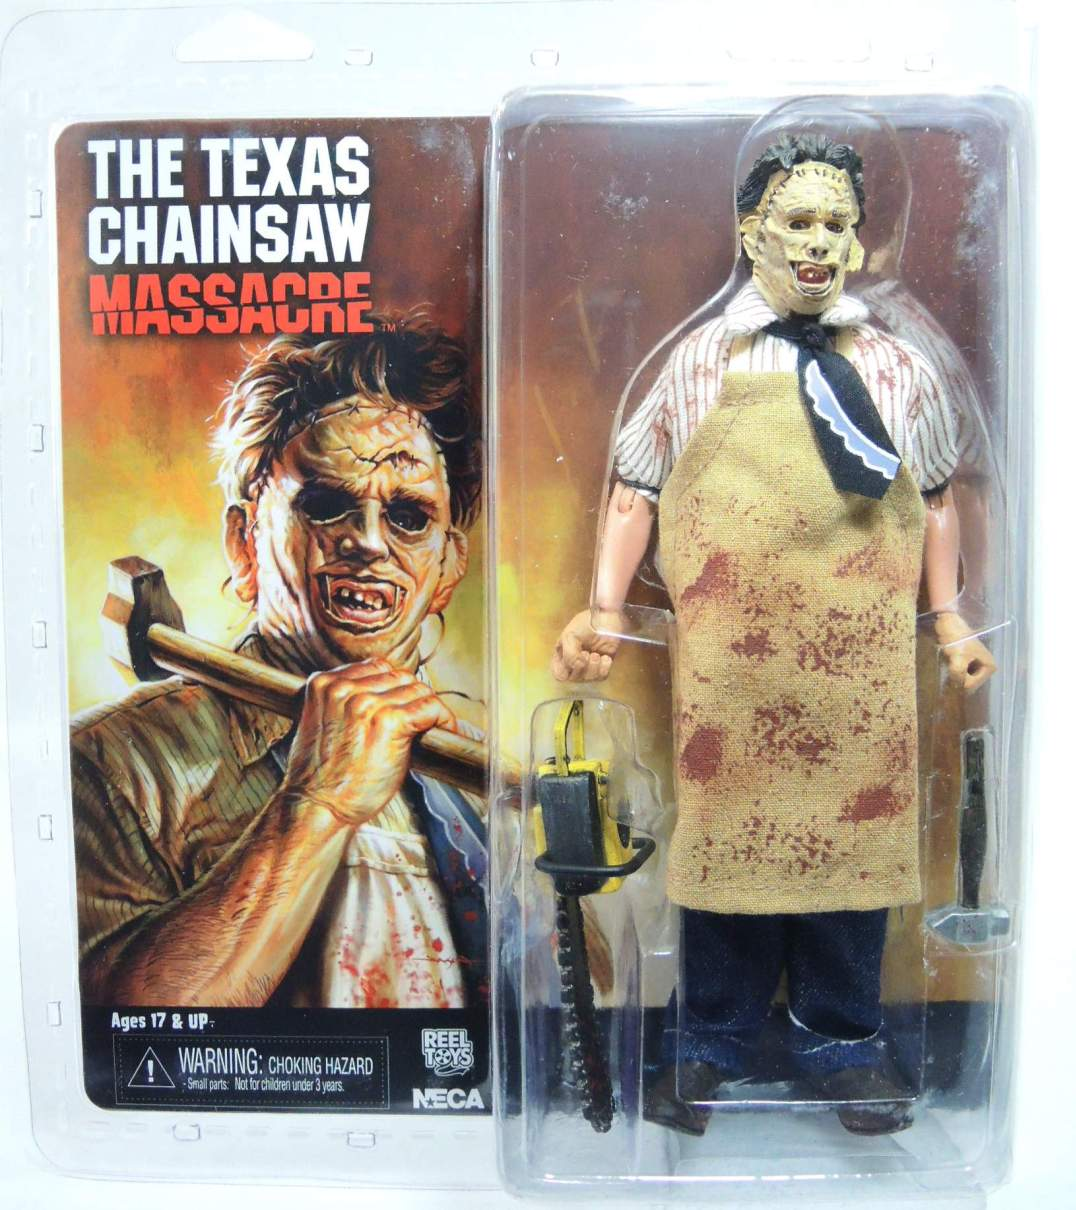 NECA Texas Chainsaw Massacre  8 inch Clothed Figure - Leatherface